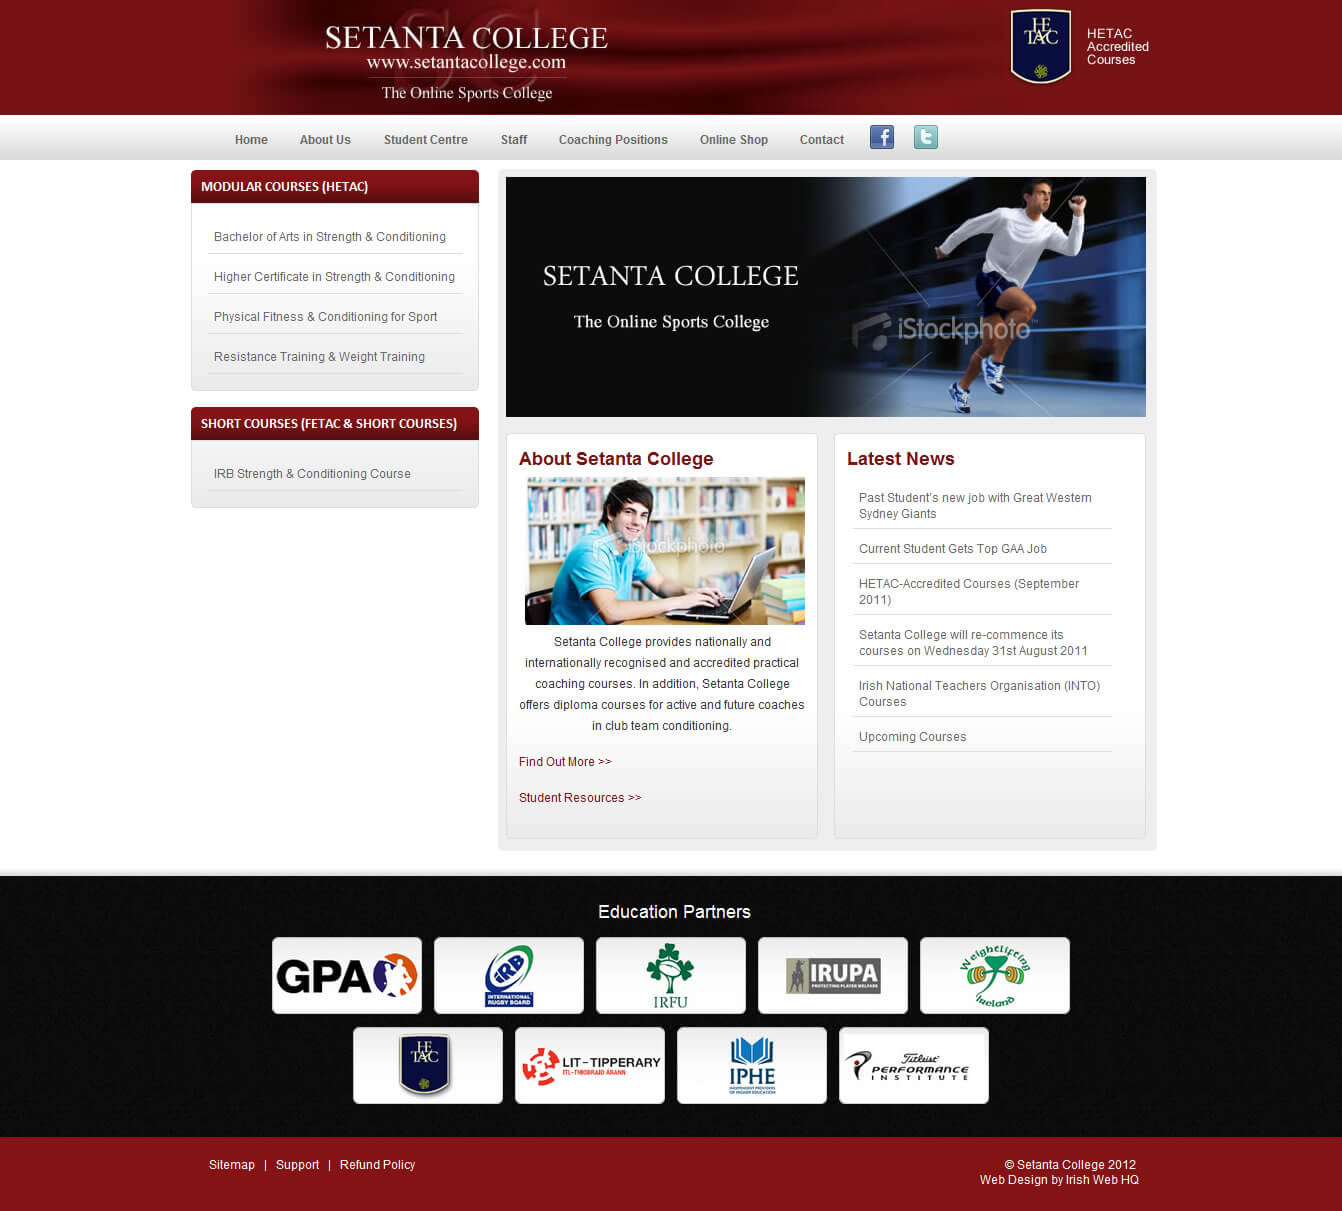 Setanta College Website Design - The Original